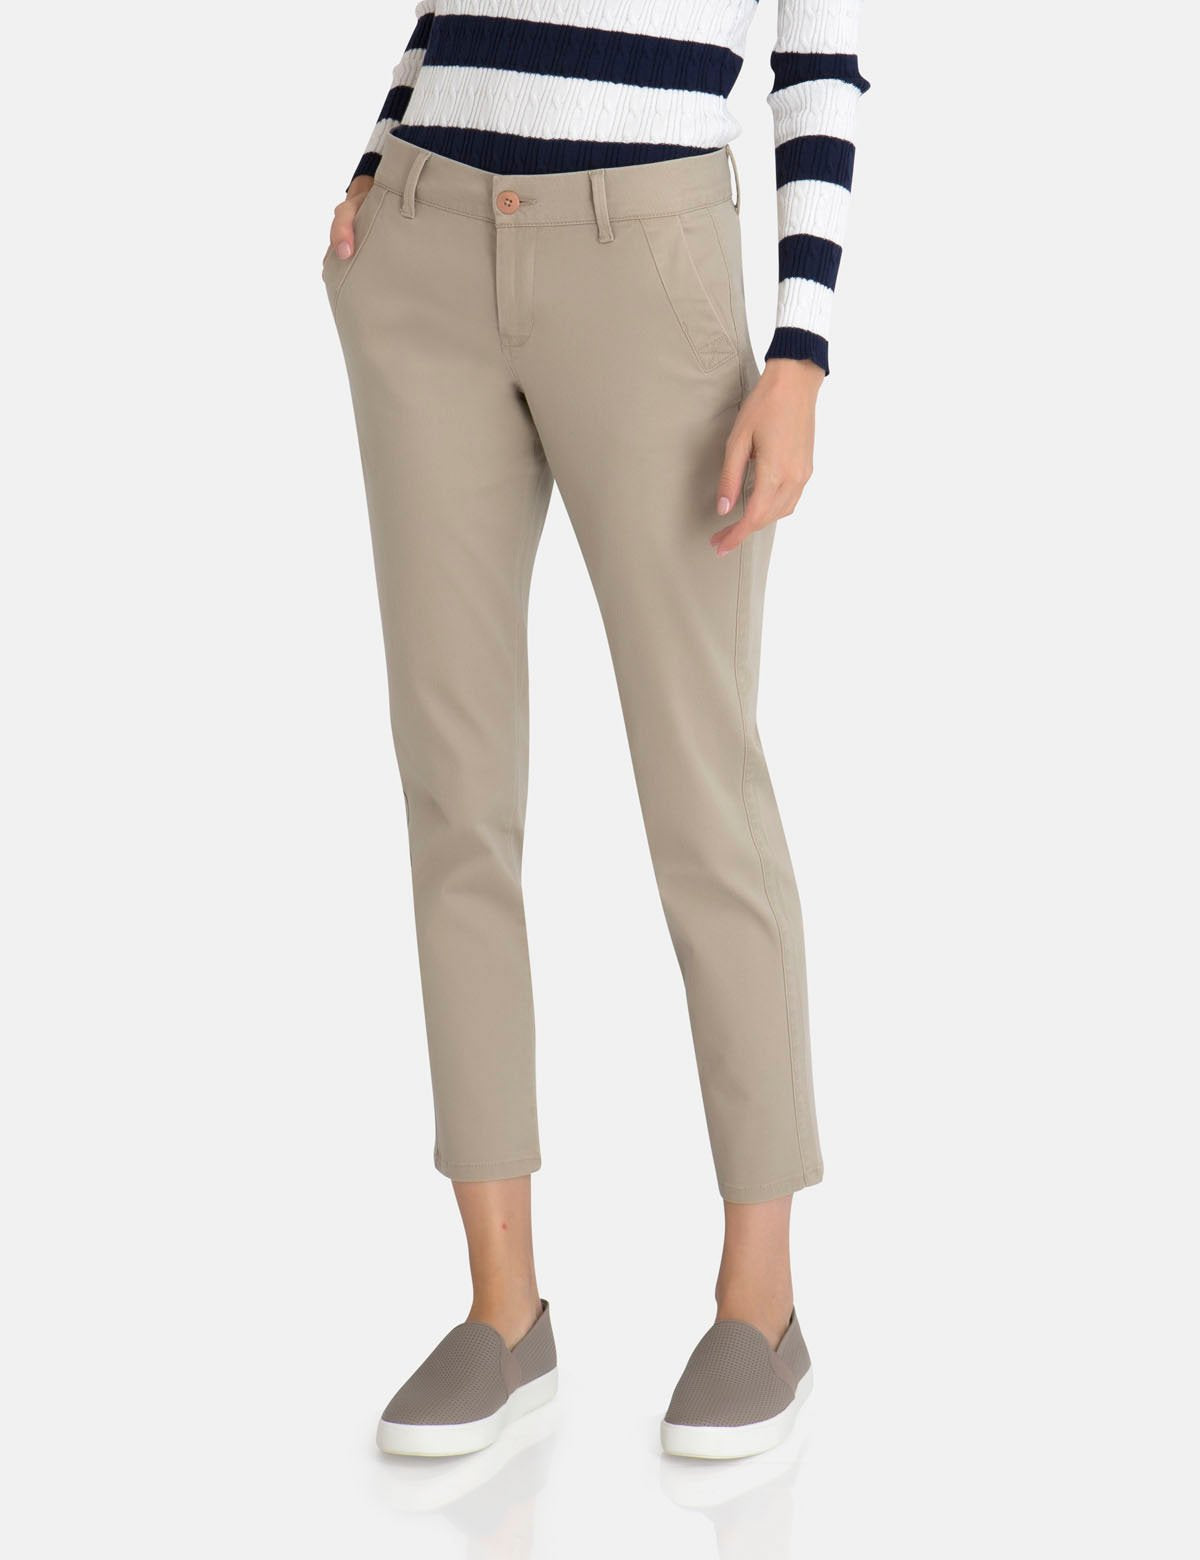 STRETCH JACKSON CHINO PANT - U.S. Polo Assn.